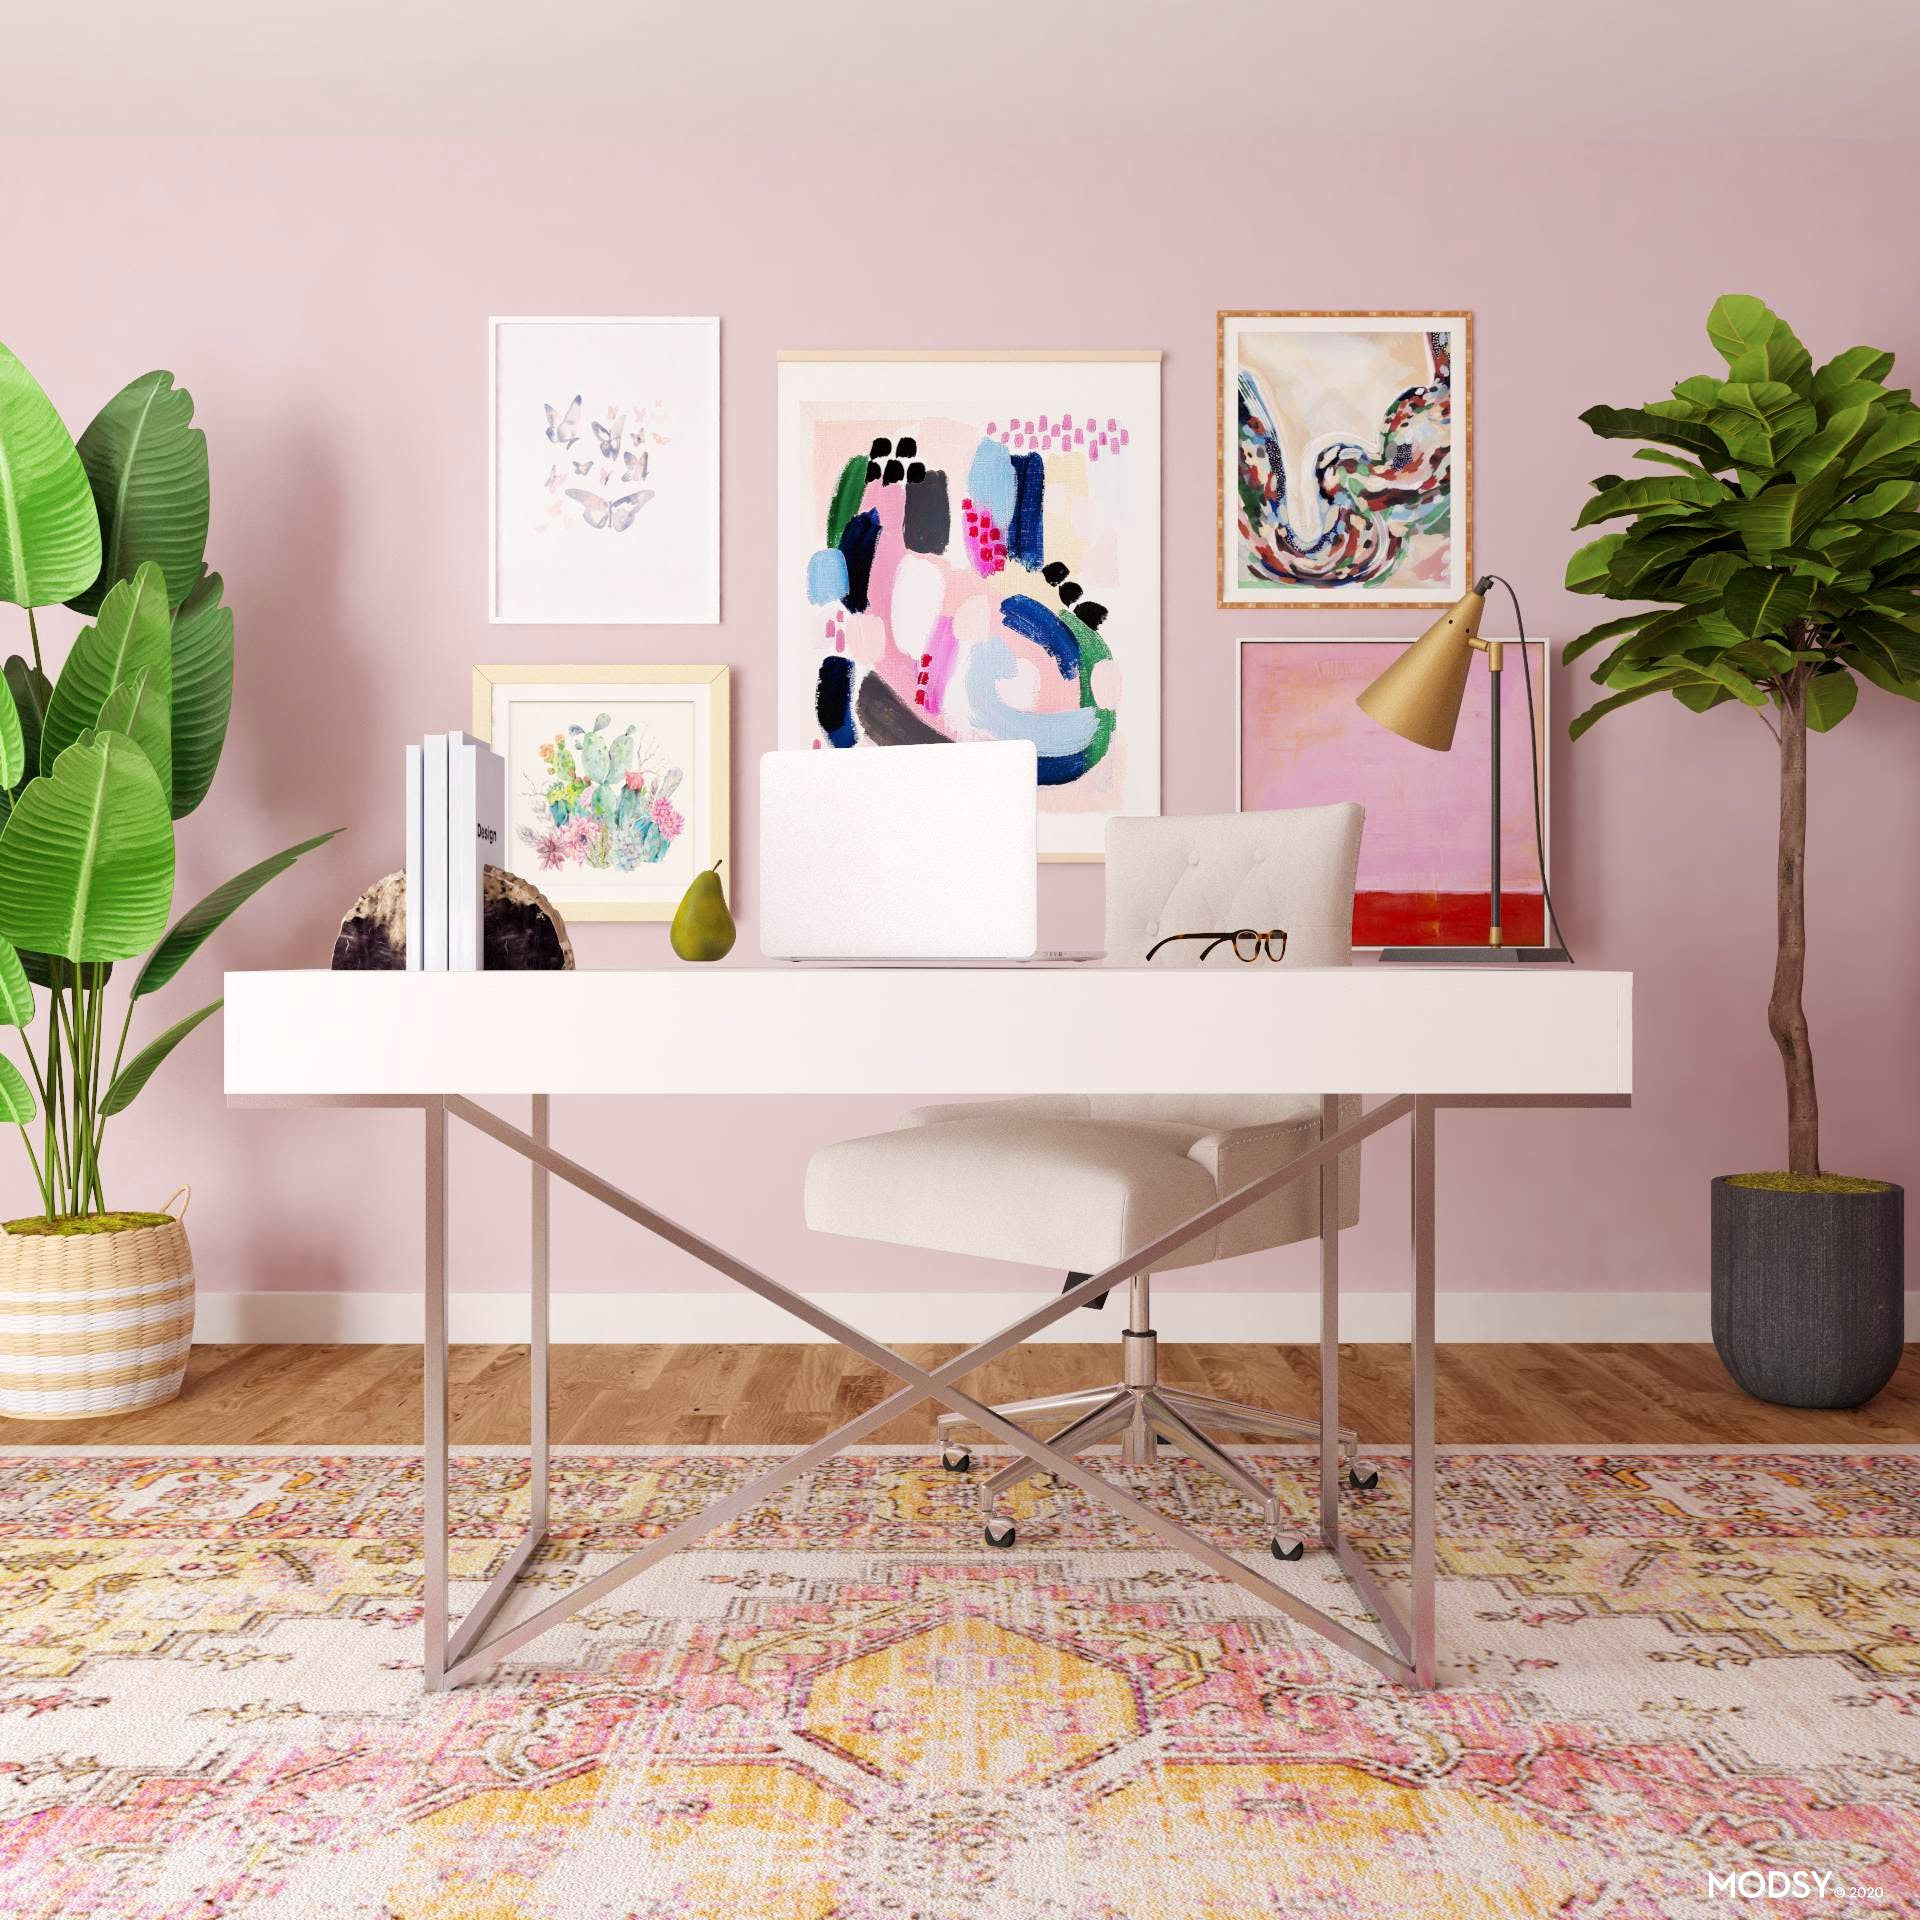 A Transitional Office: Pastels